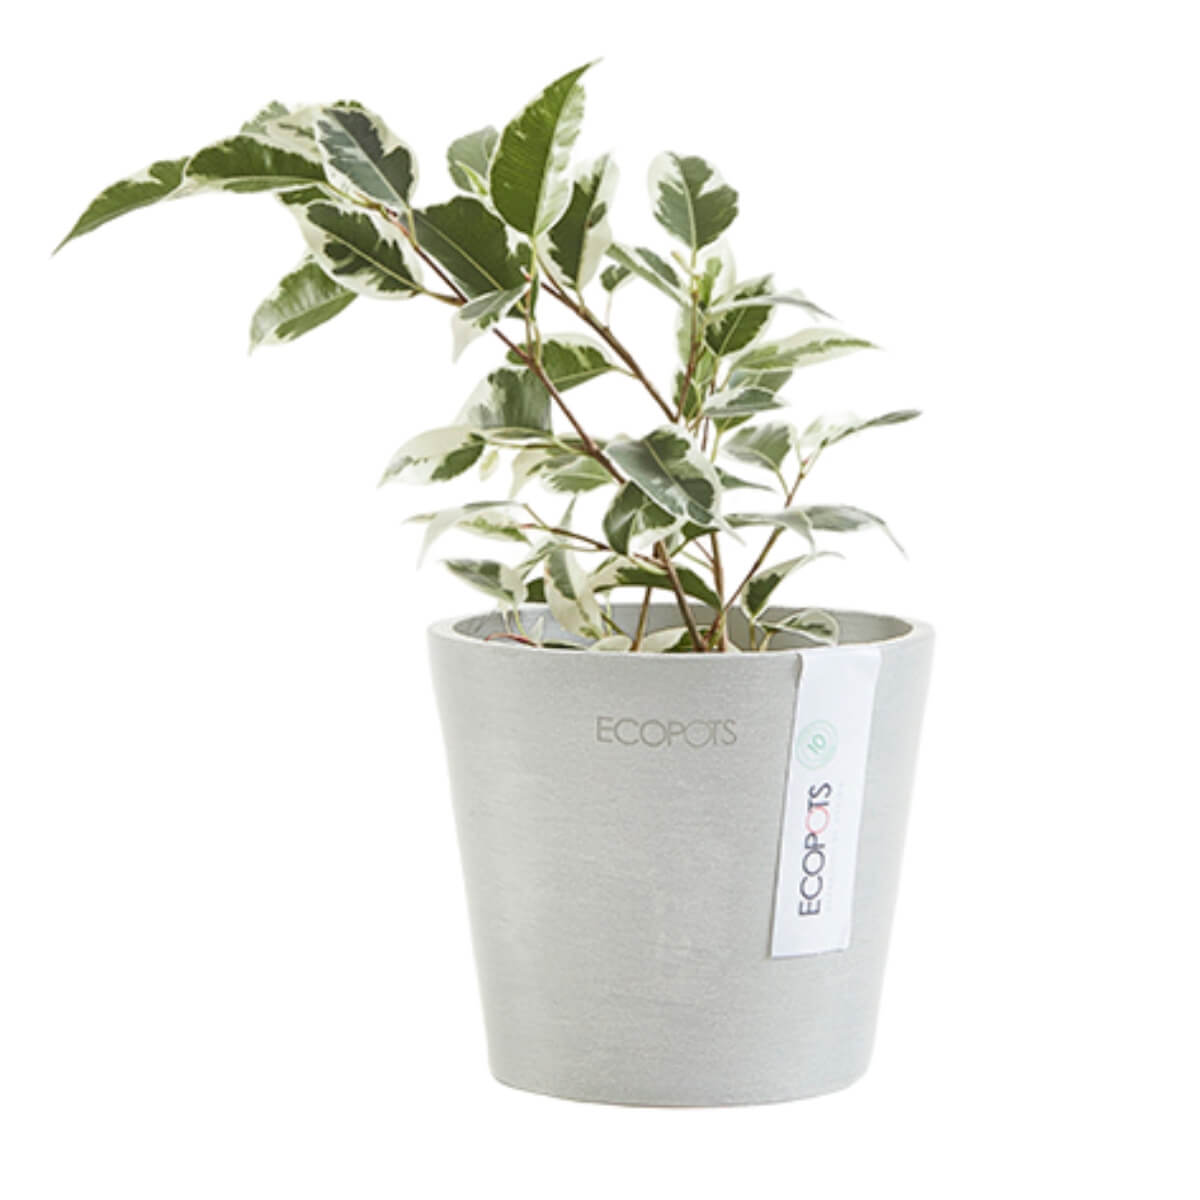 Ecopots Amsterdam small pot